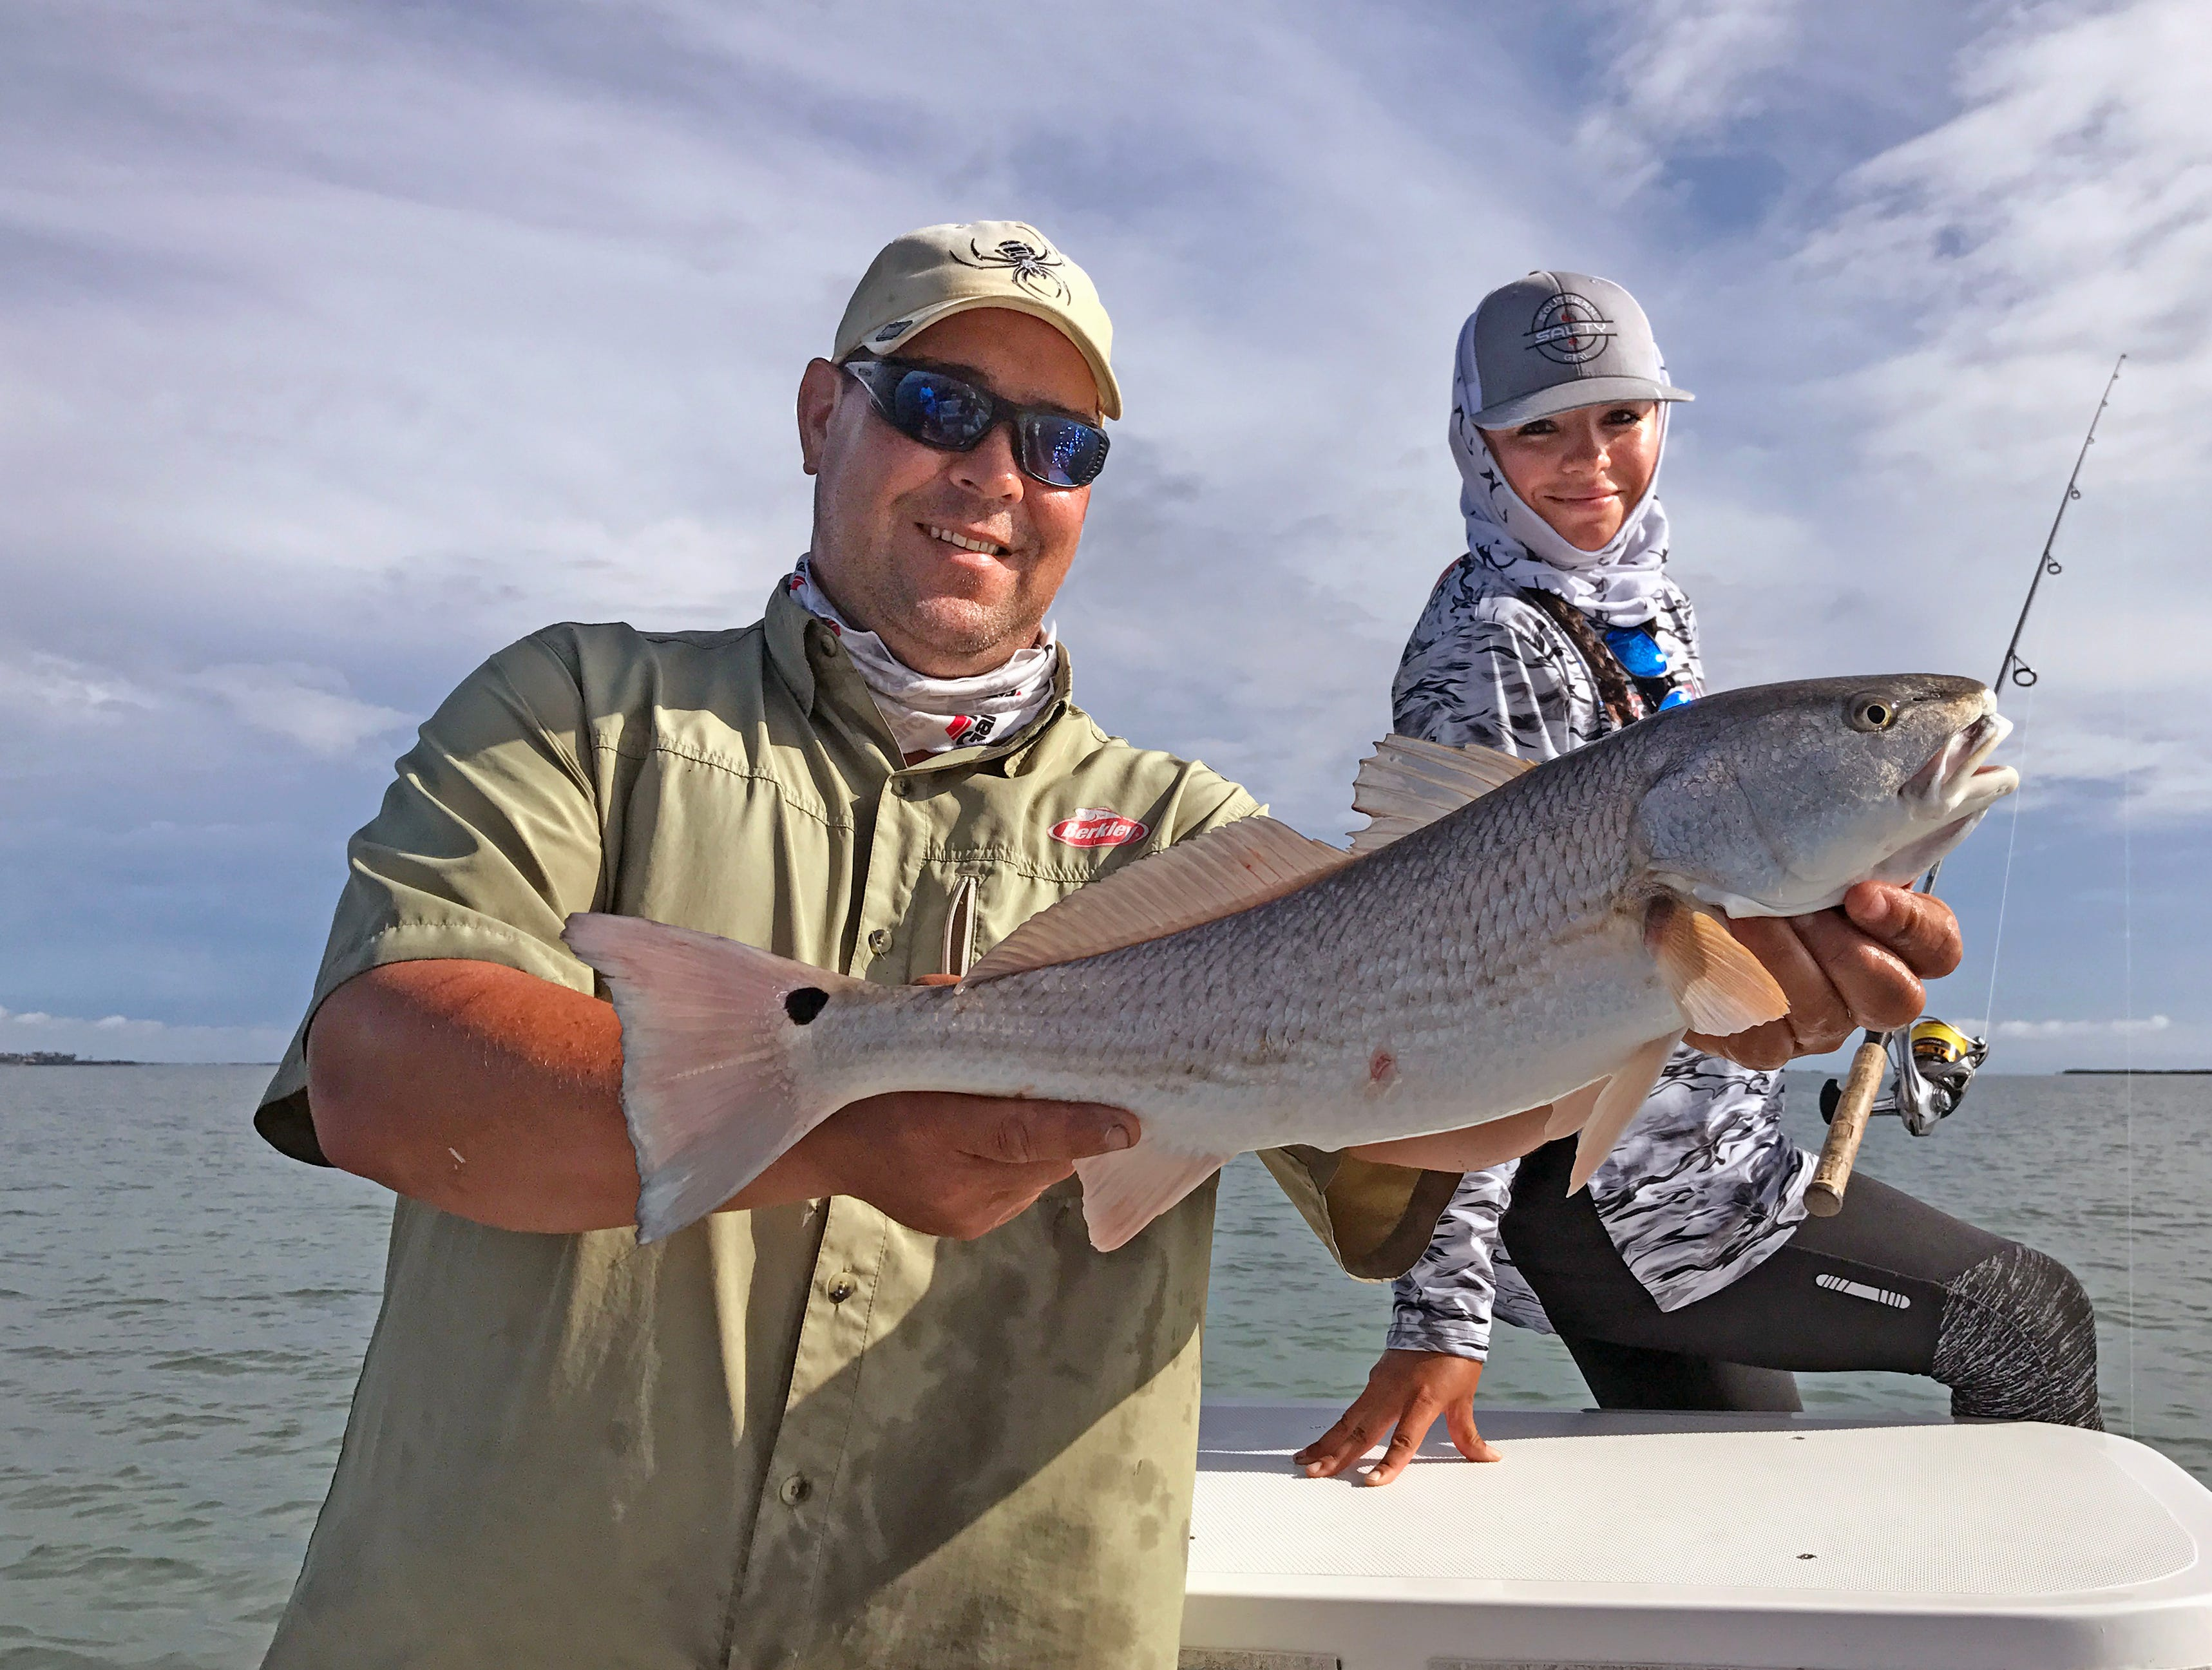 Capt. Mike Mahl found redfish, trout and drum on a shallow seagrass flat near Laguna Vista.